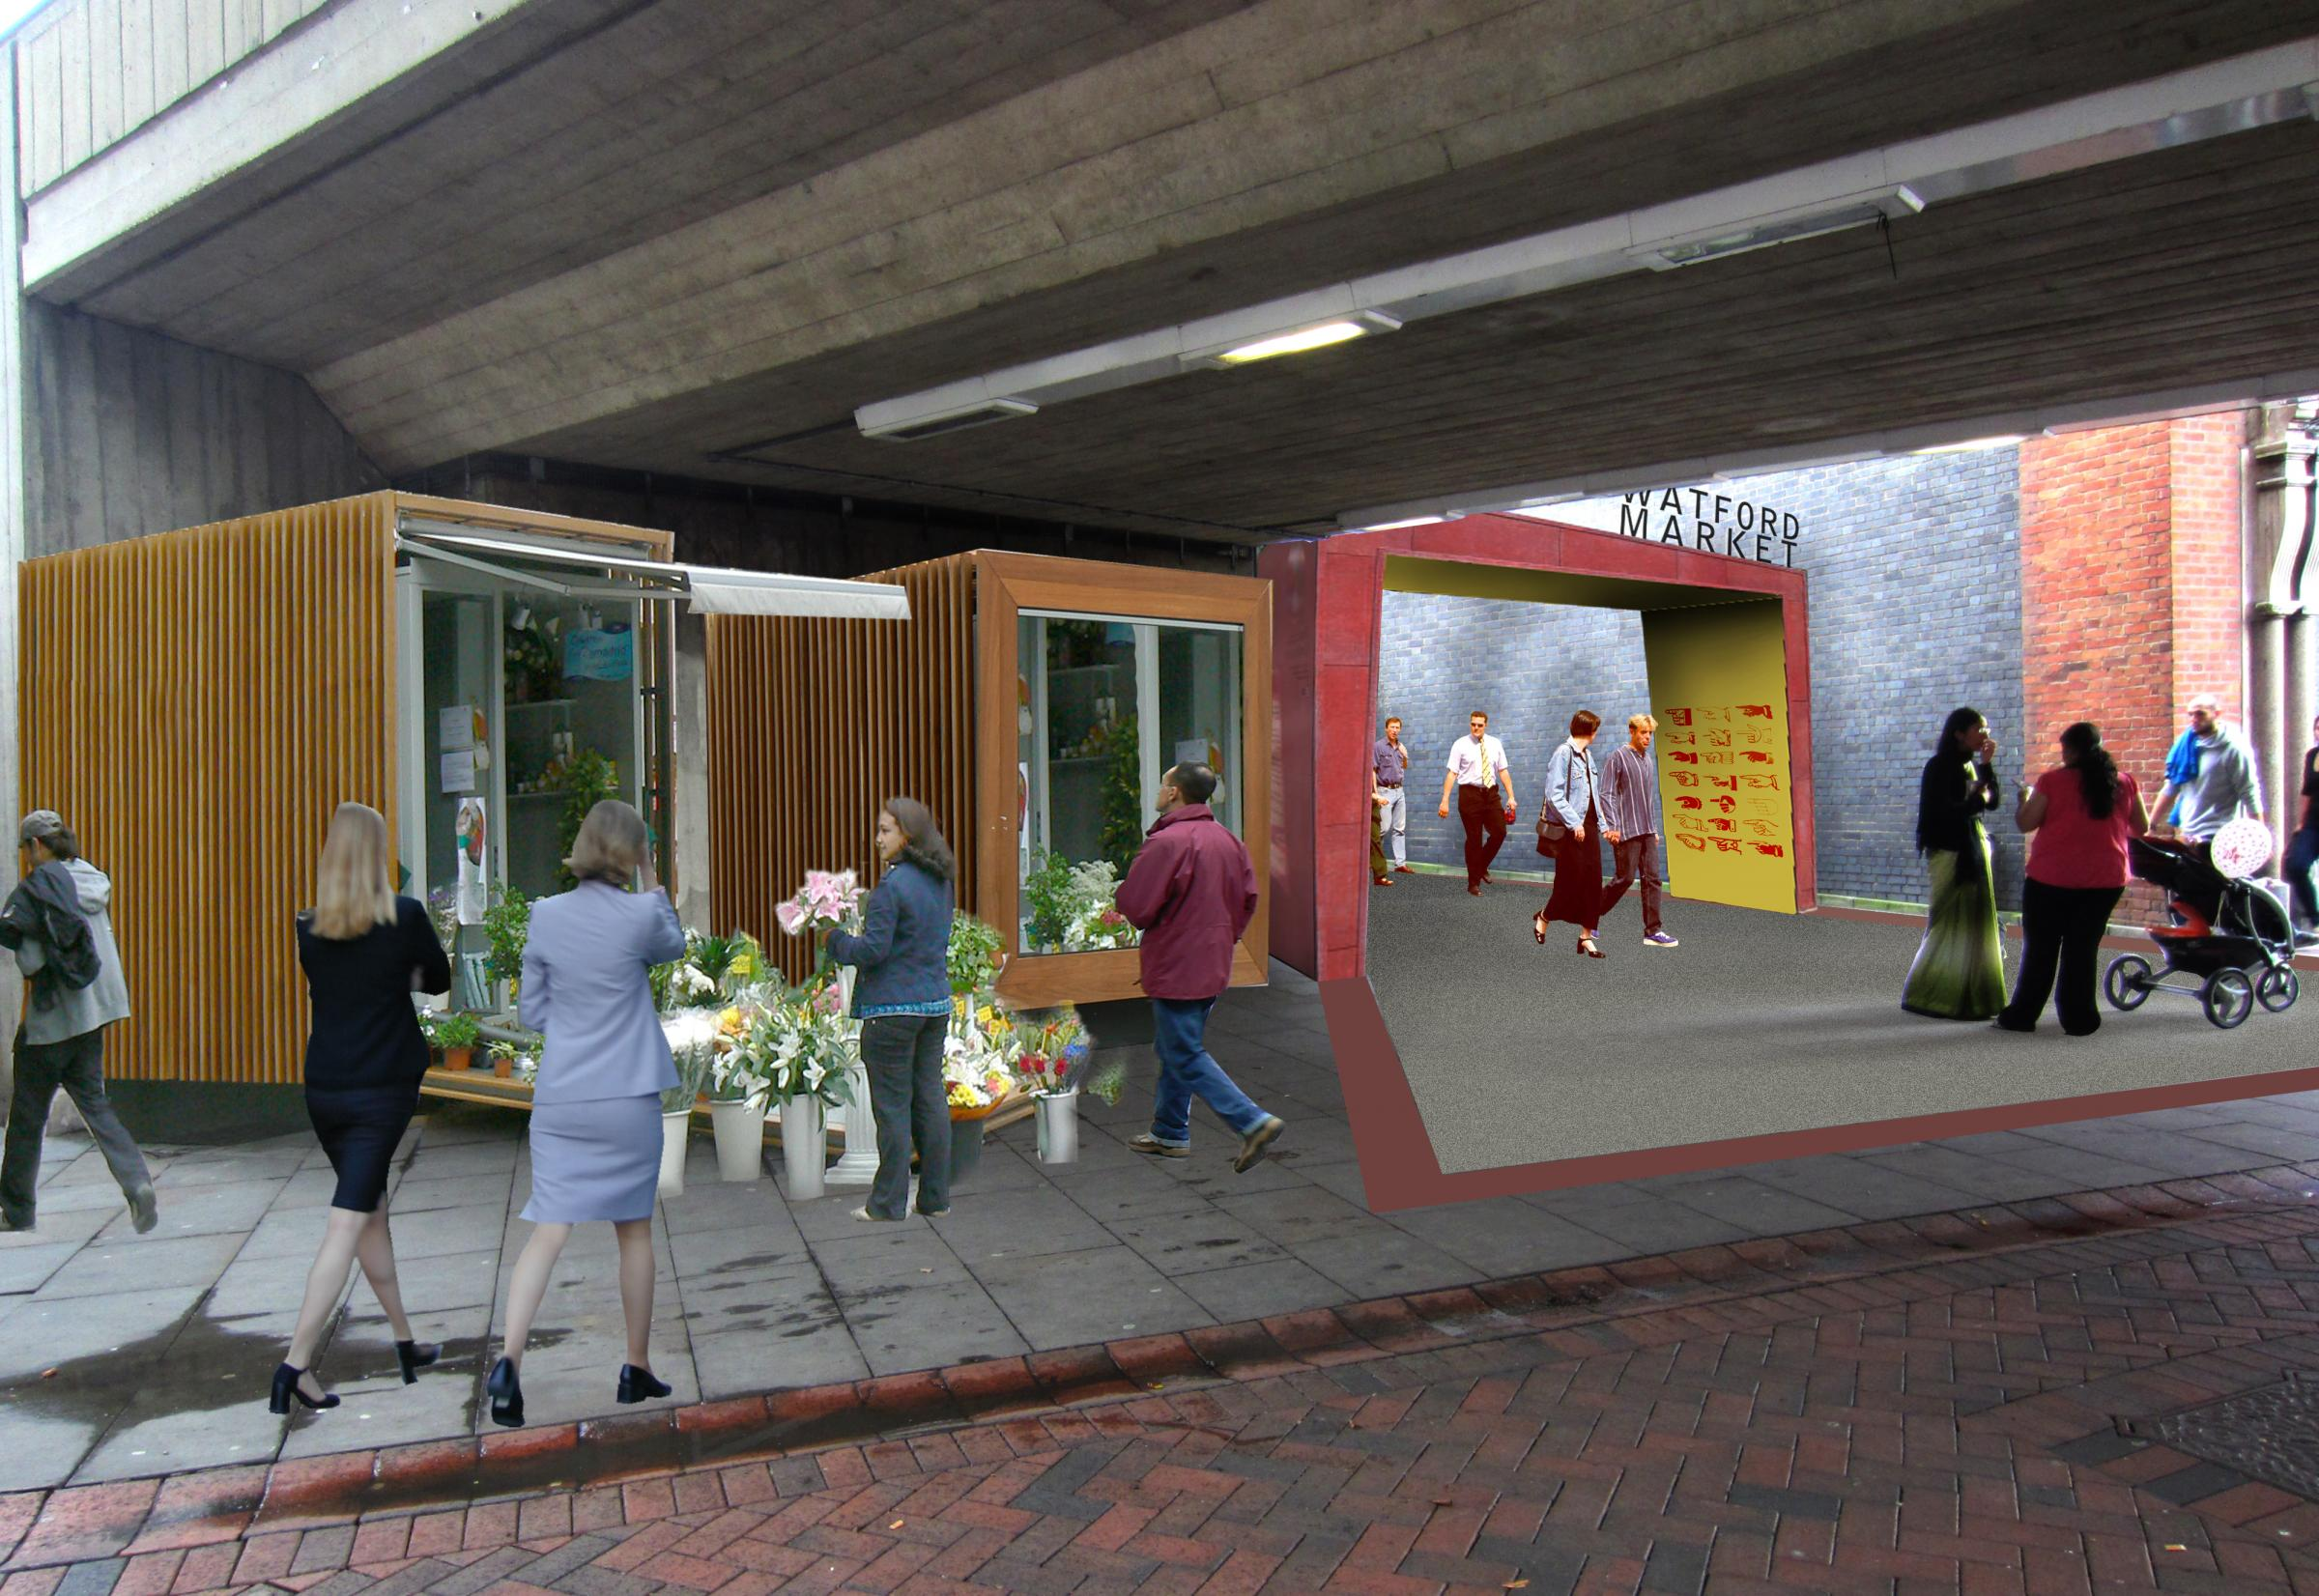 Work starts at Watford's new market